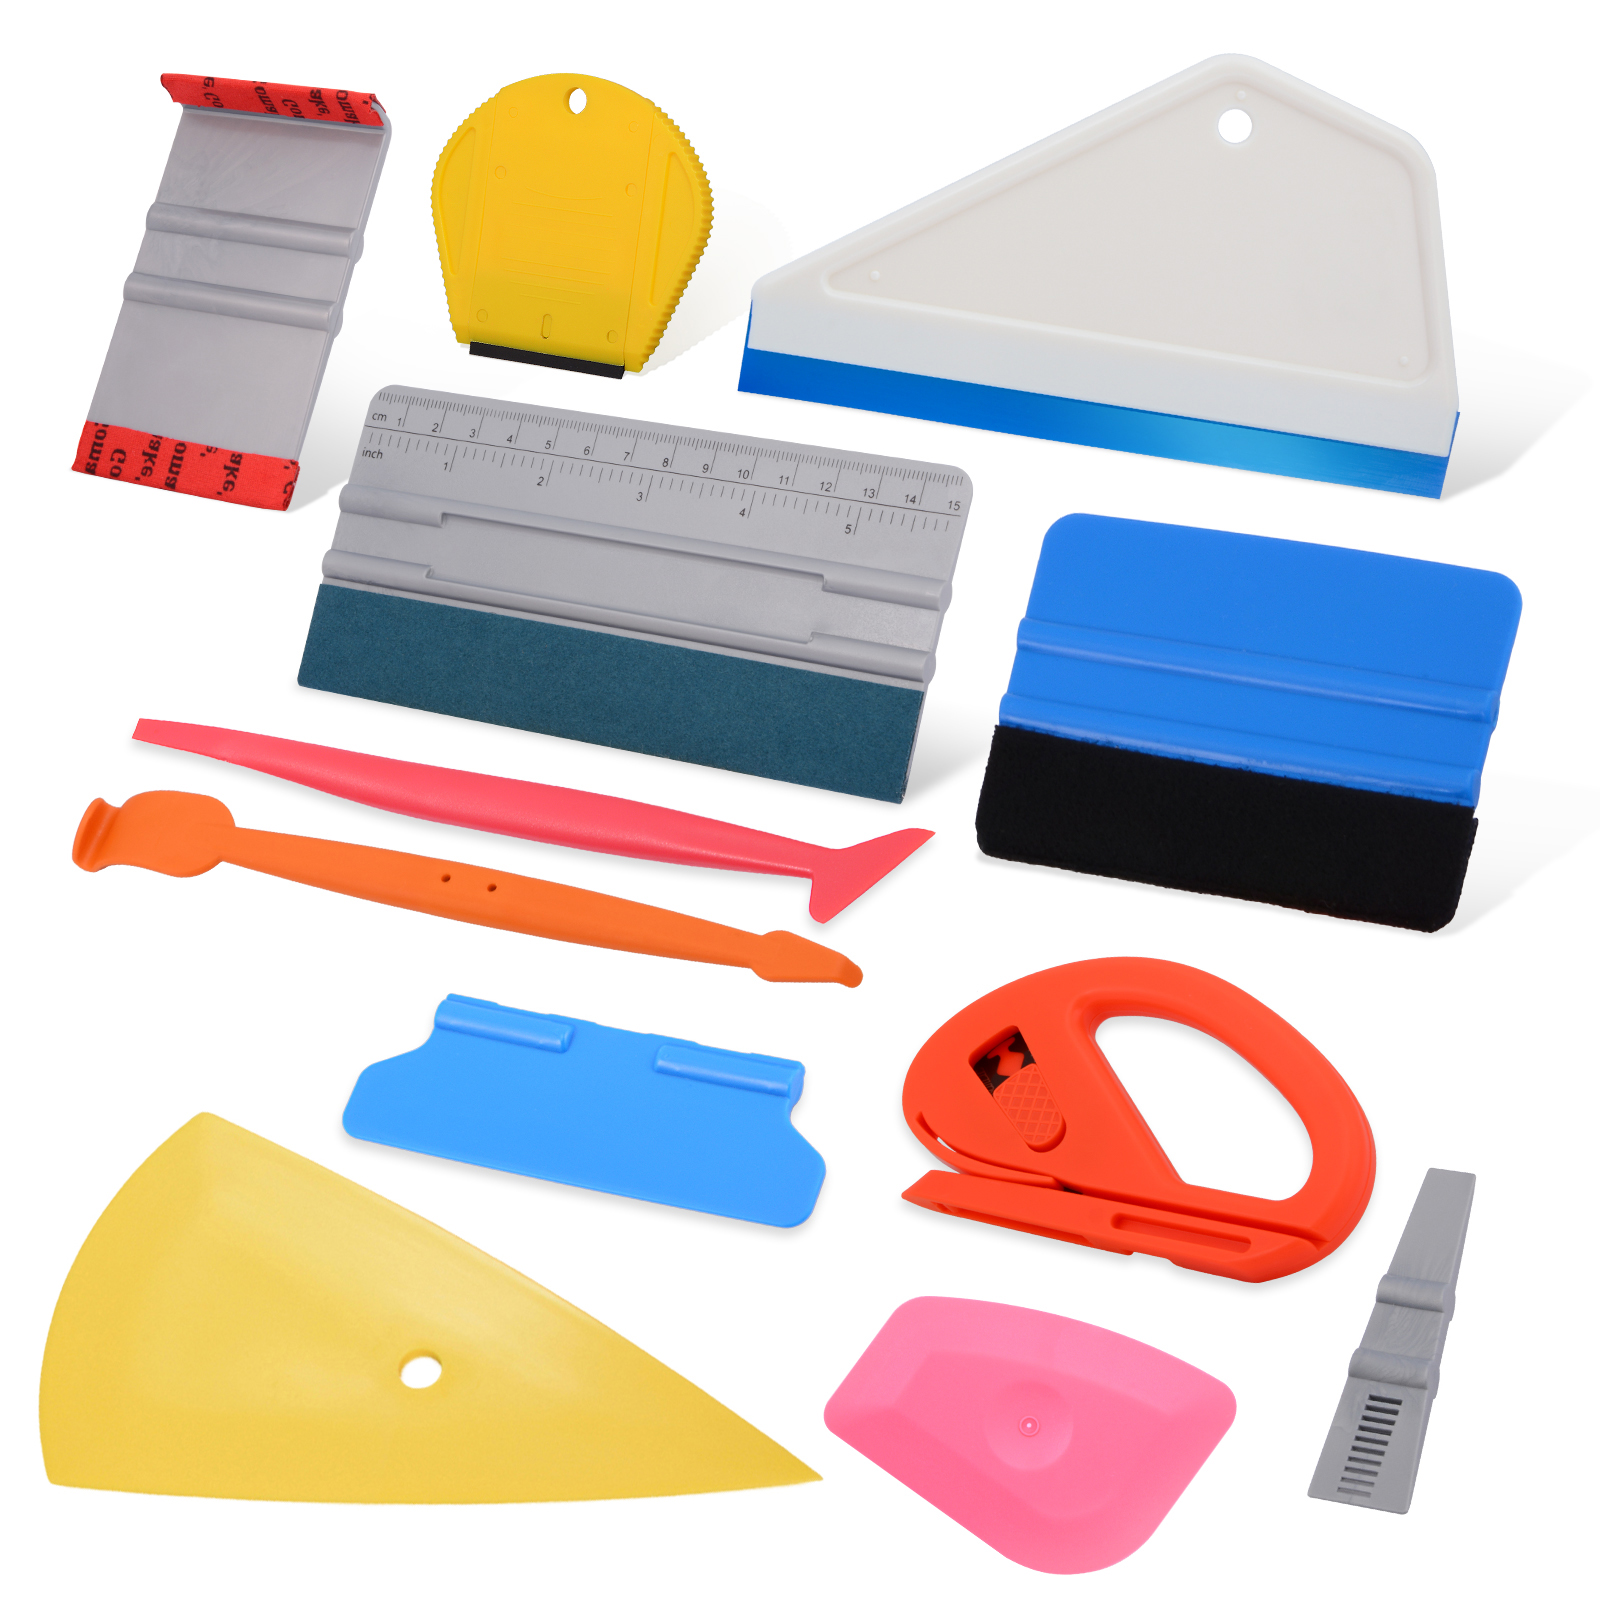 EHDIS Vinyl Car Wrap Tools Kit Covering Film Car Wrapping Magnet Squeegee Carbon Fiber Install Tool Set Auto Vehicle Accessories